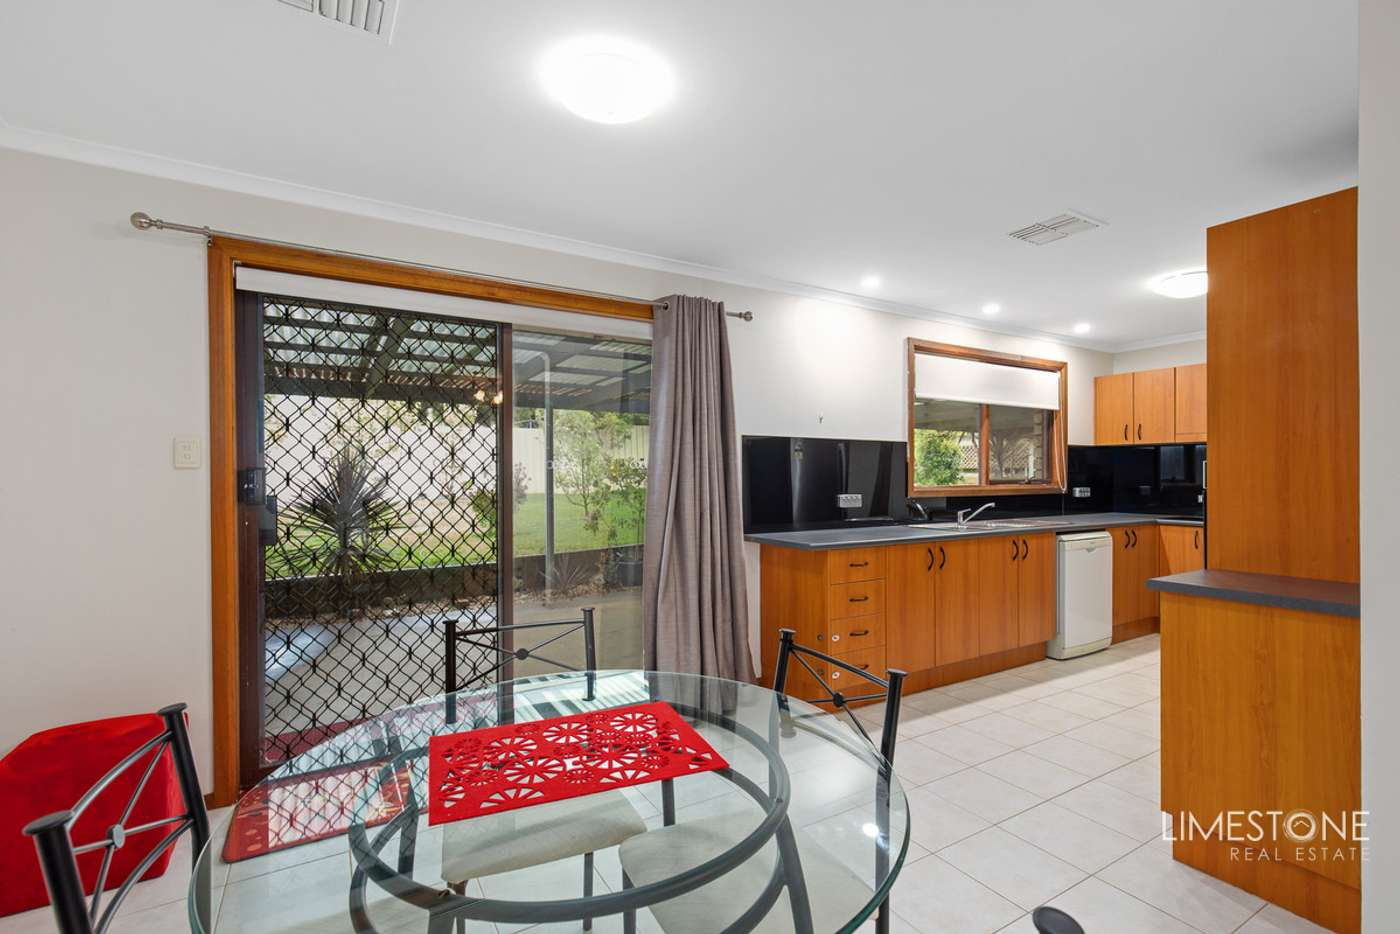 Sixth view of Homely house listing, 15 Sim Street, Mount Gambier SA 5290